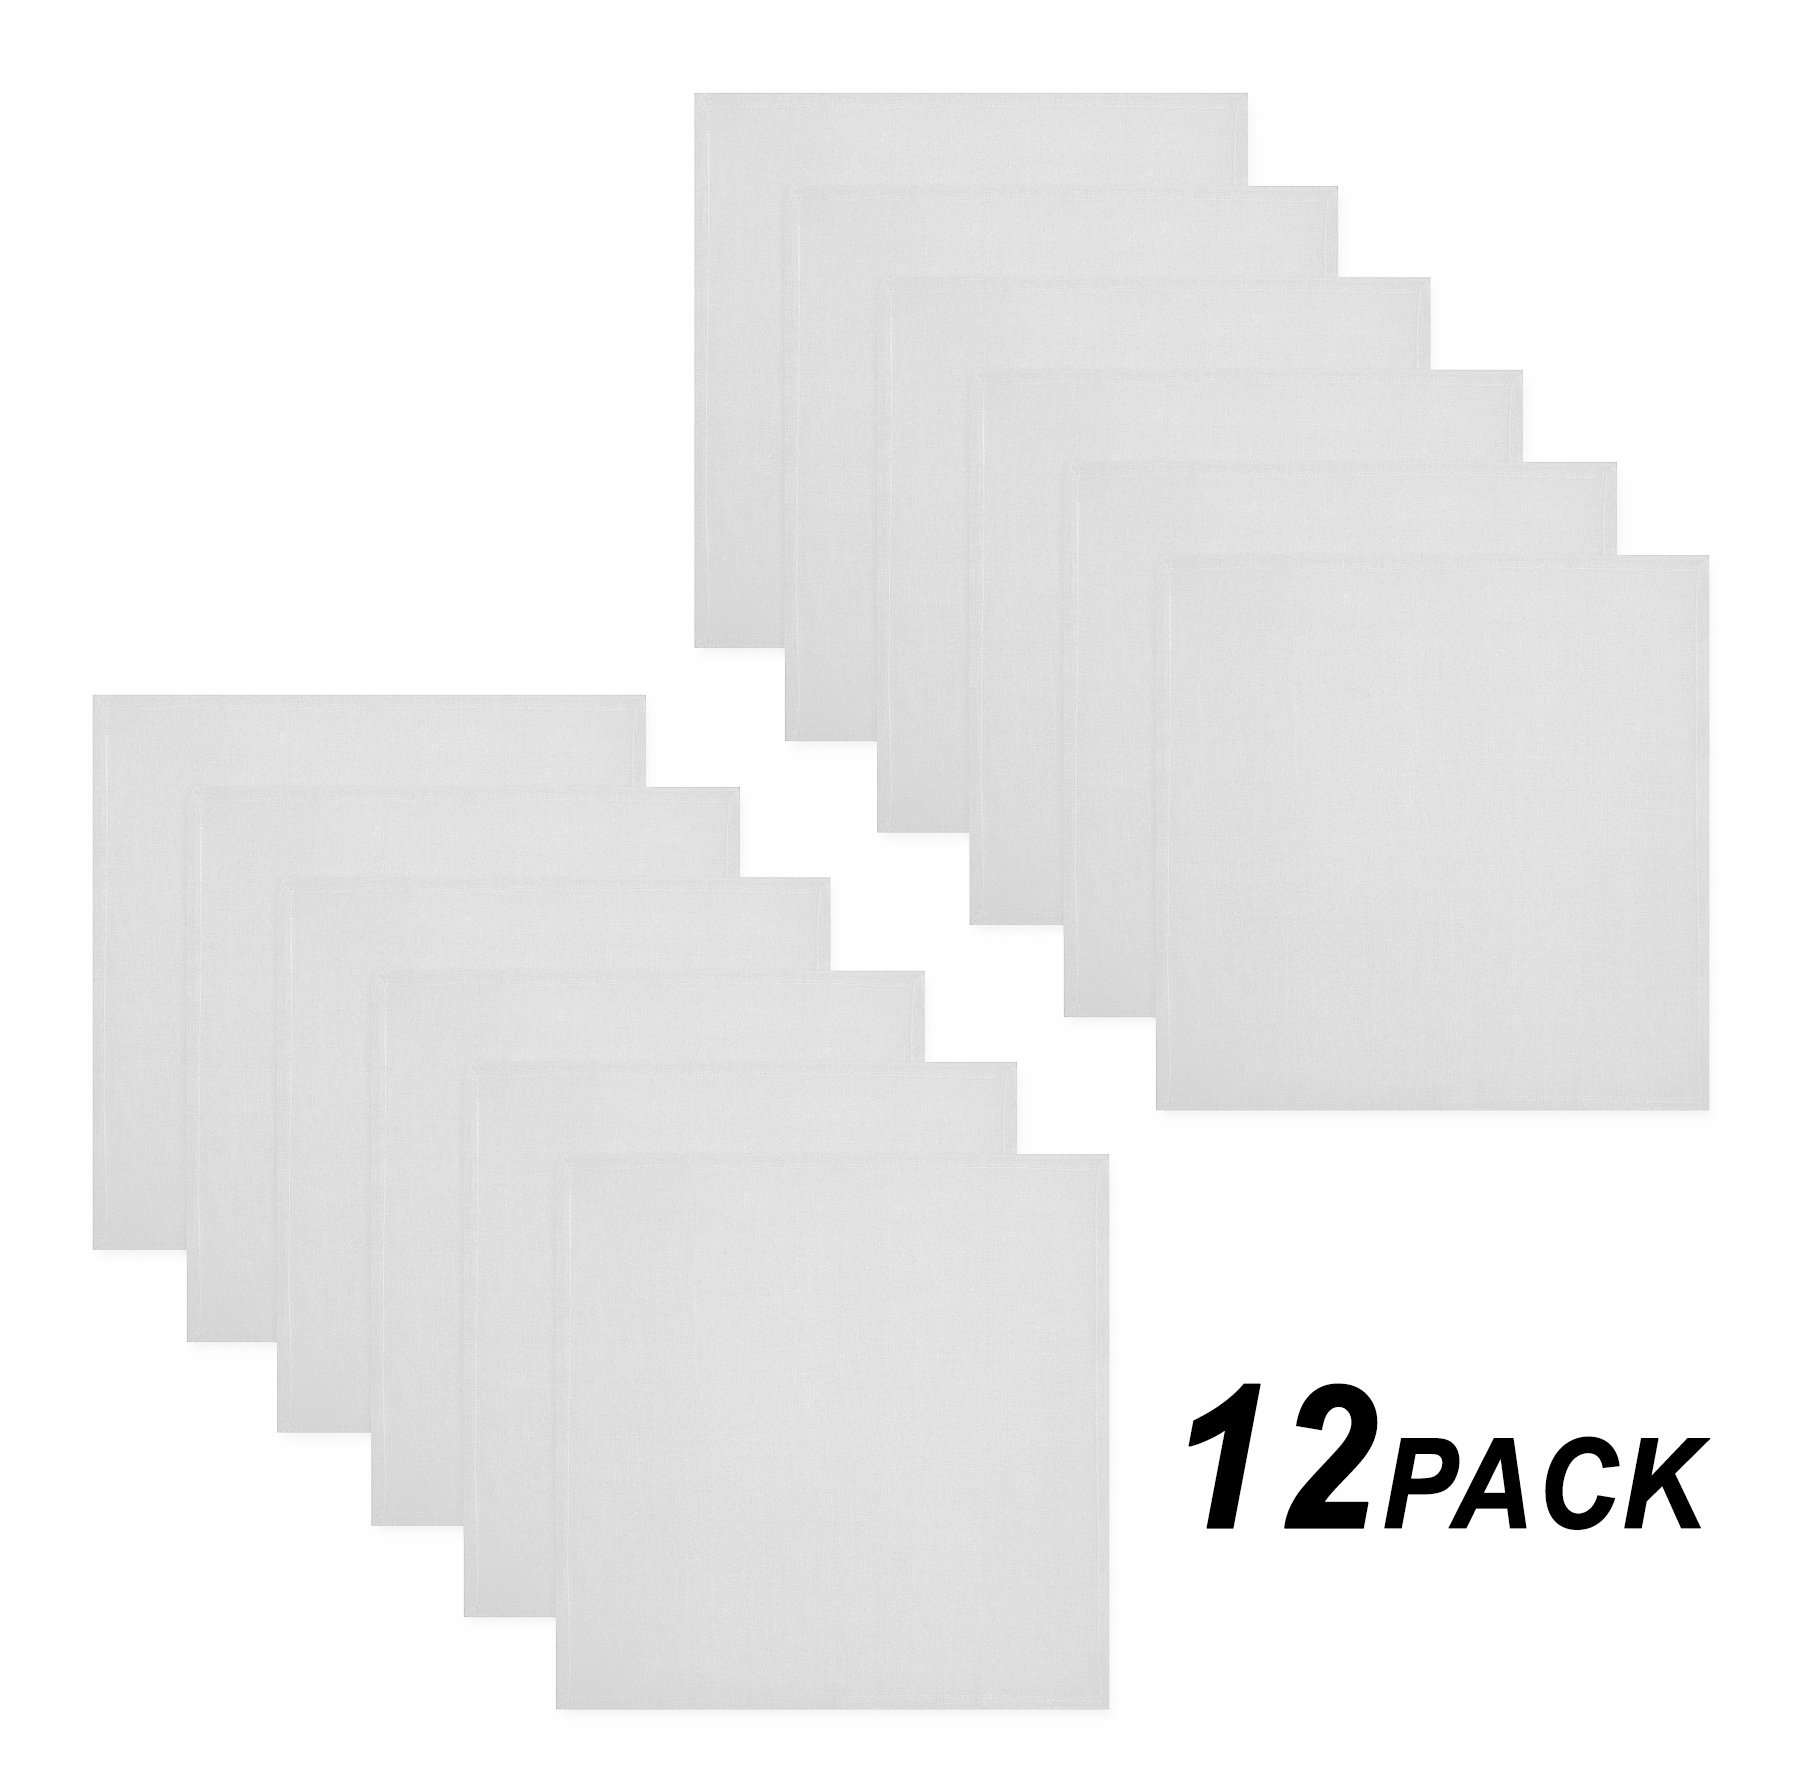 Cotton Craft Napkins, 12 Pack Oversized Dinner Napkins 20x20 White, 100% Cotton, Tailored with Mitered corners and a generous hem, Napkins are 38% larger than standard size napkins